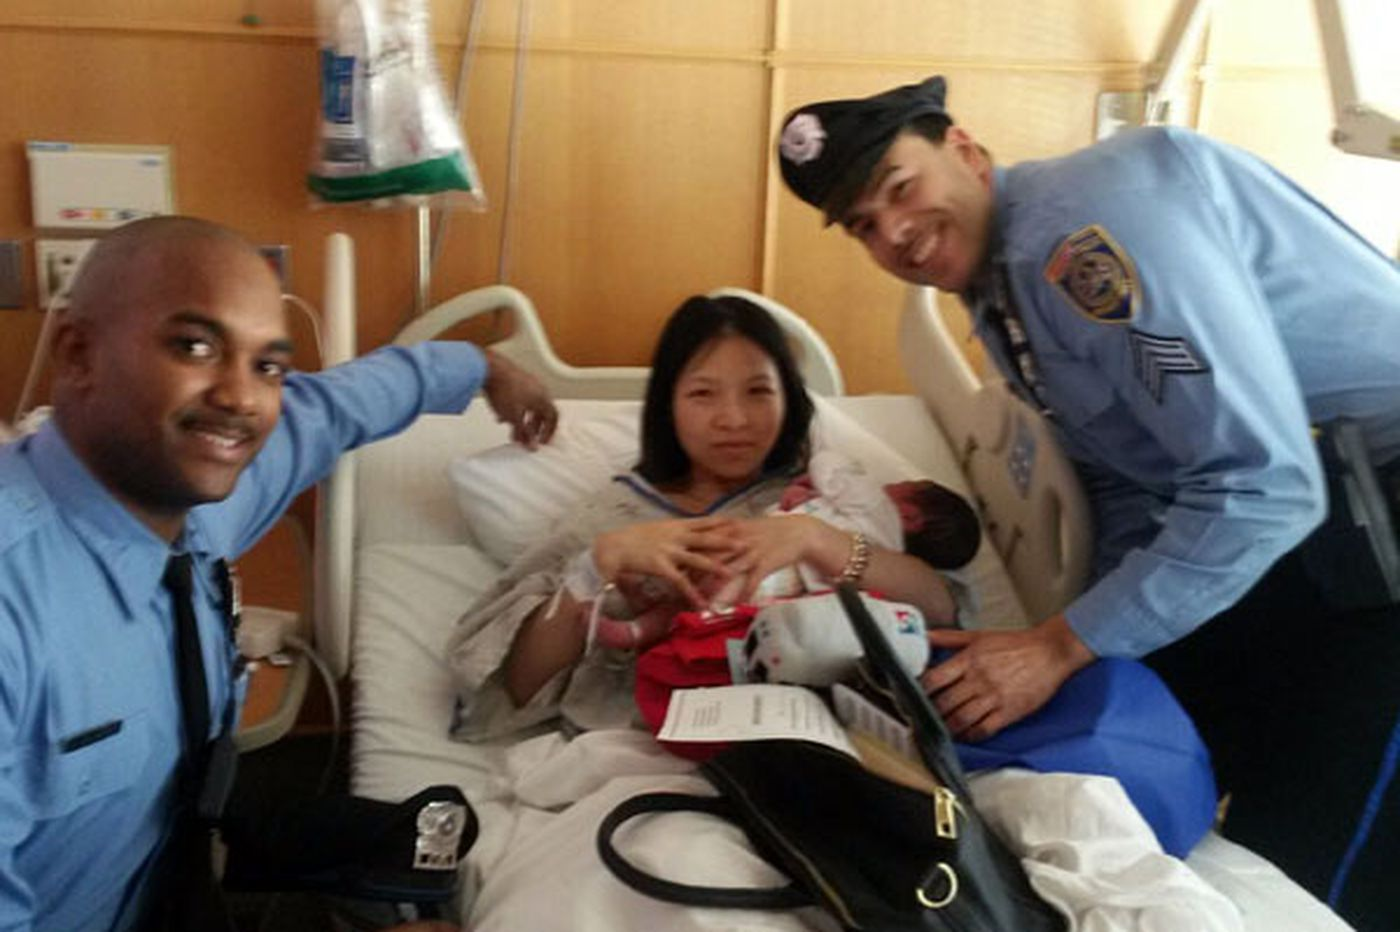 Officers who helped baby into the world come bearing gifts